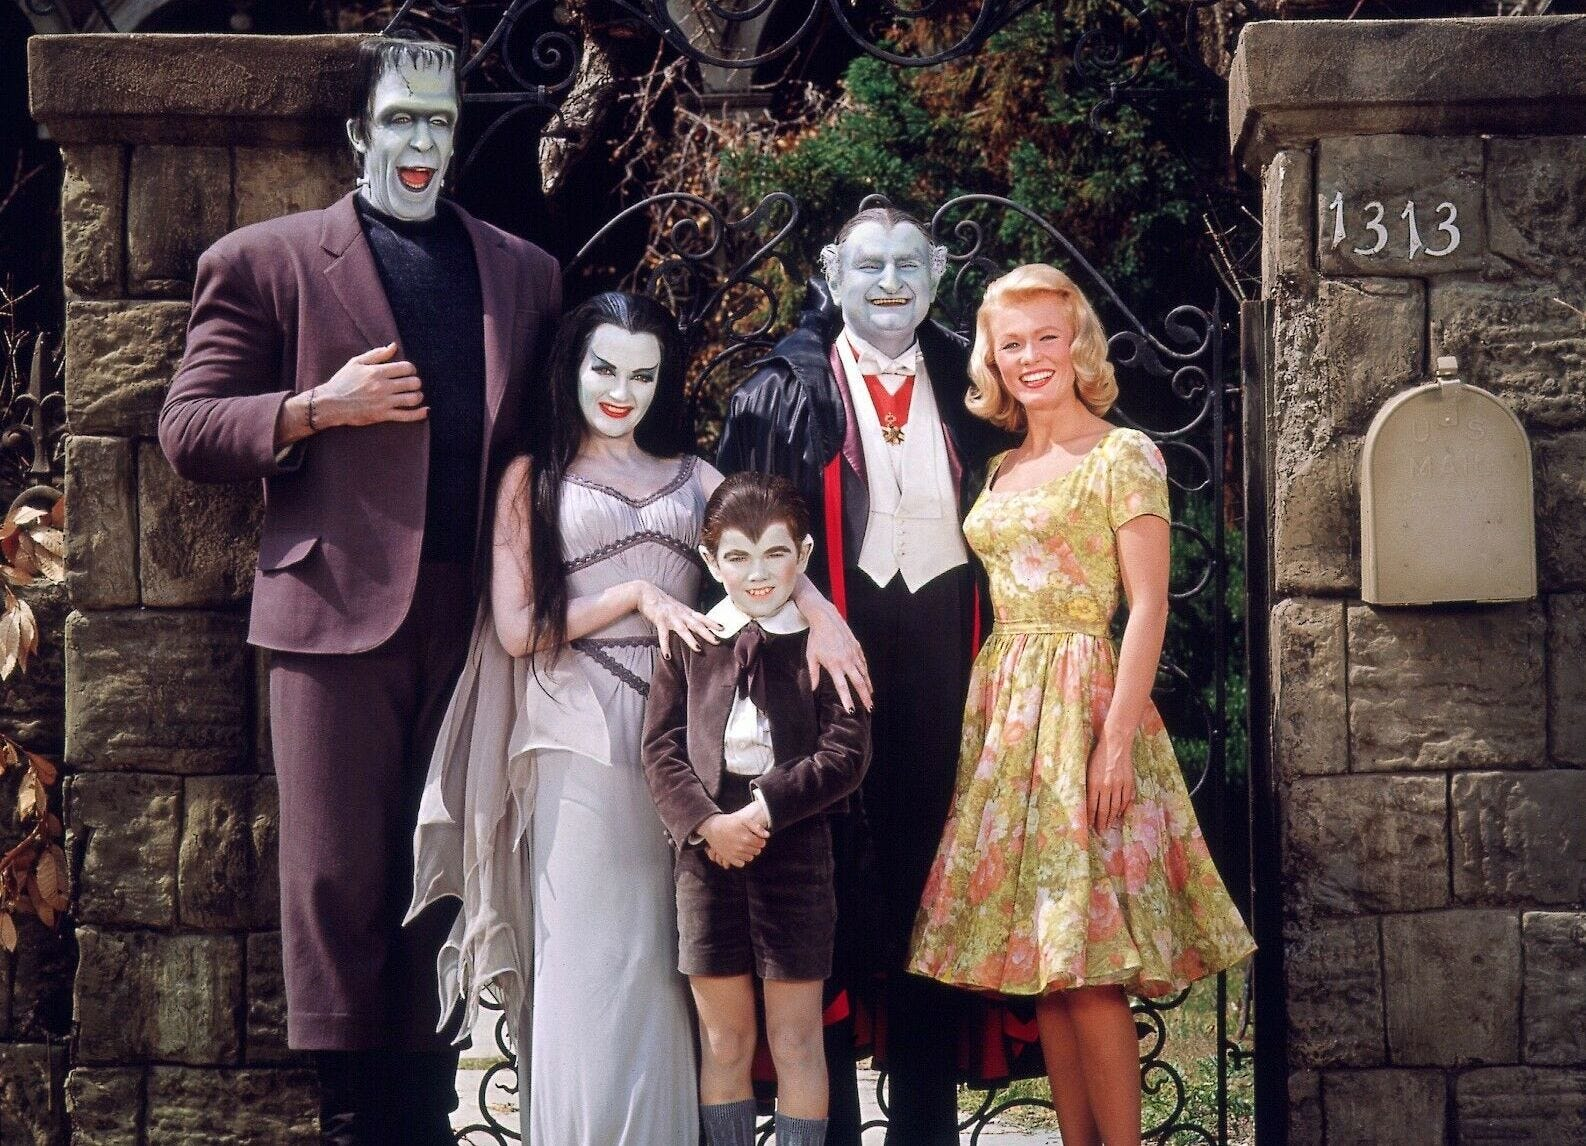 Pat Priest recalls her acting career including The Munsters